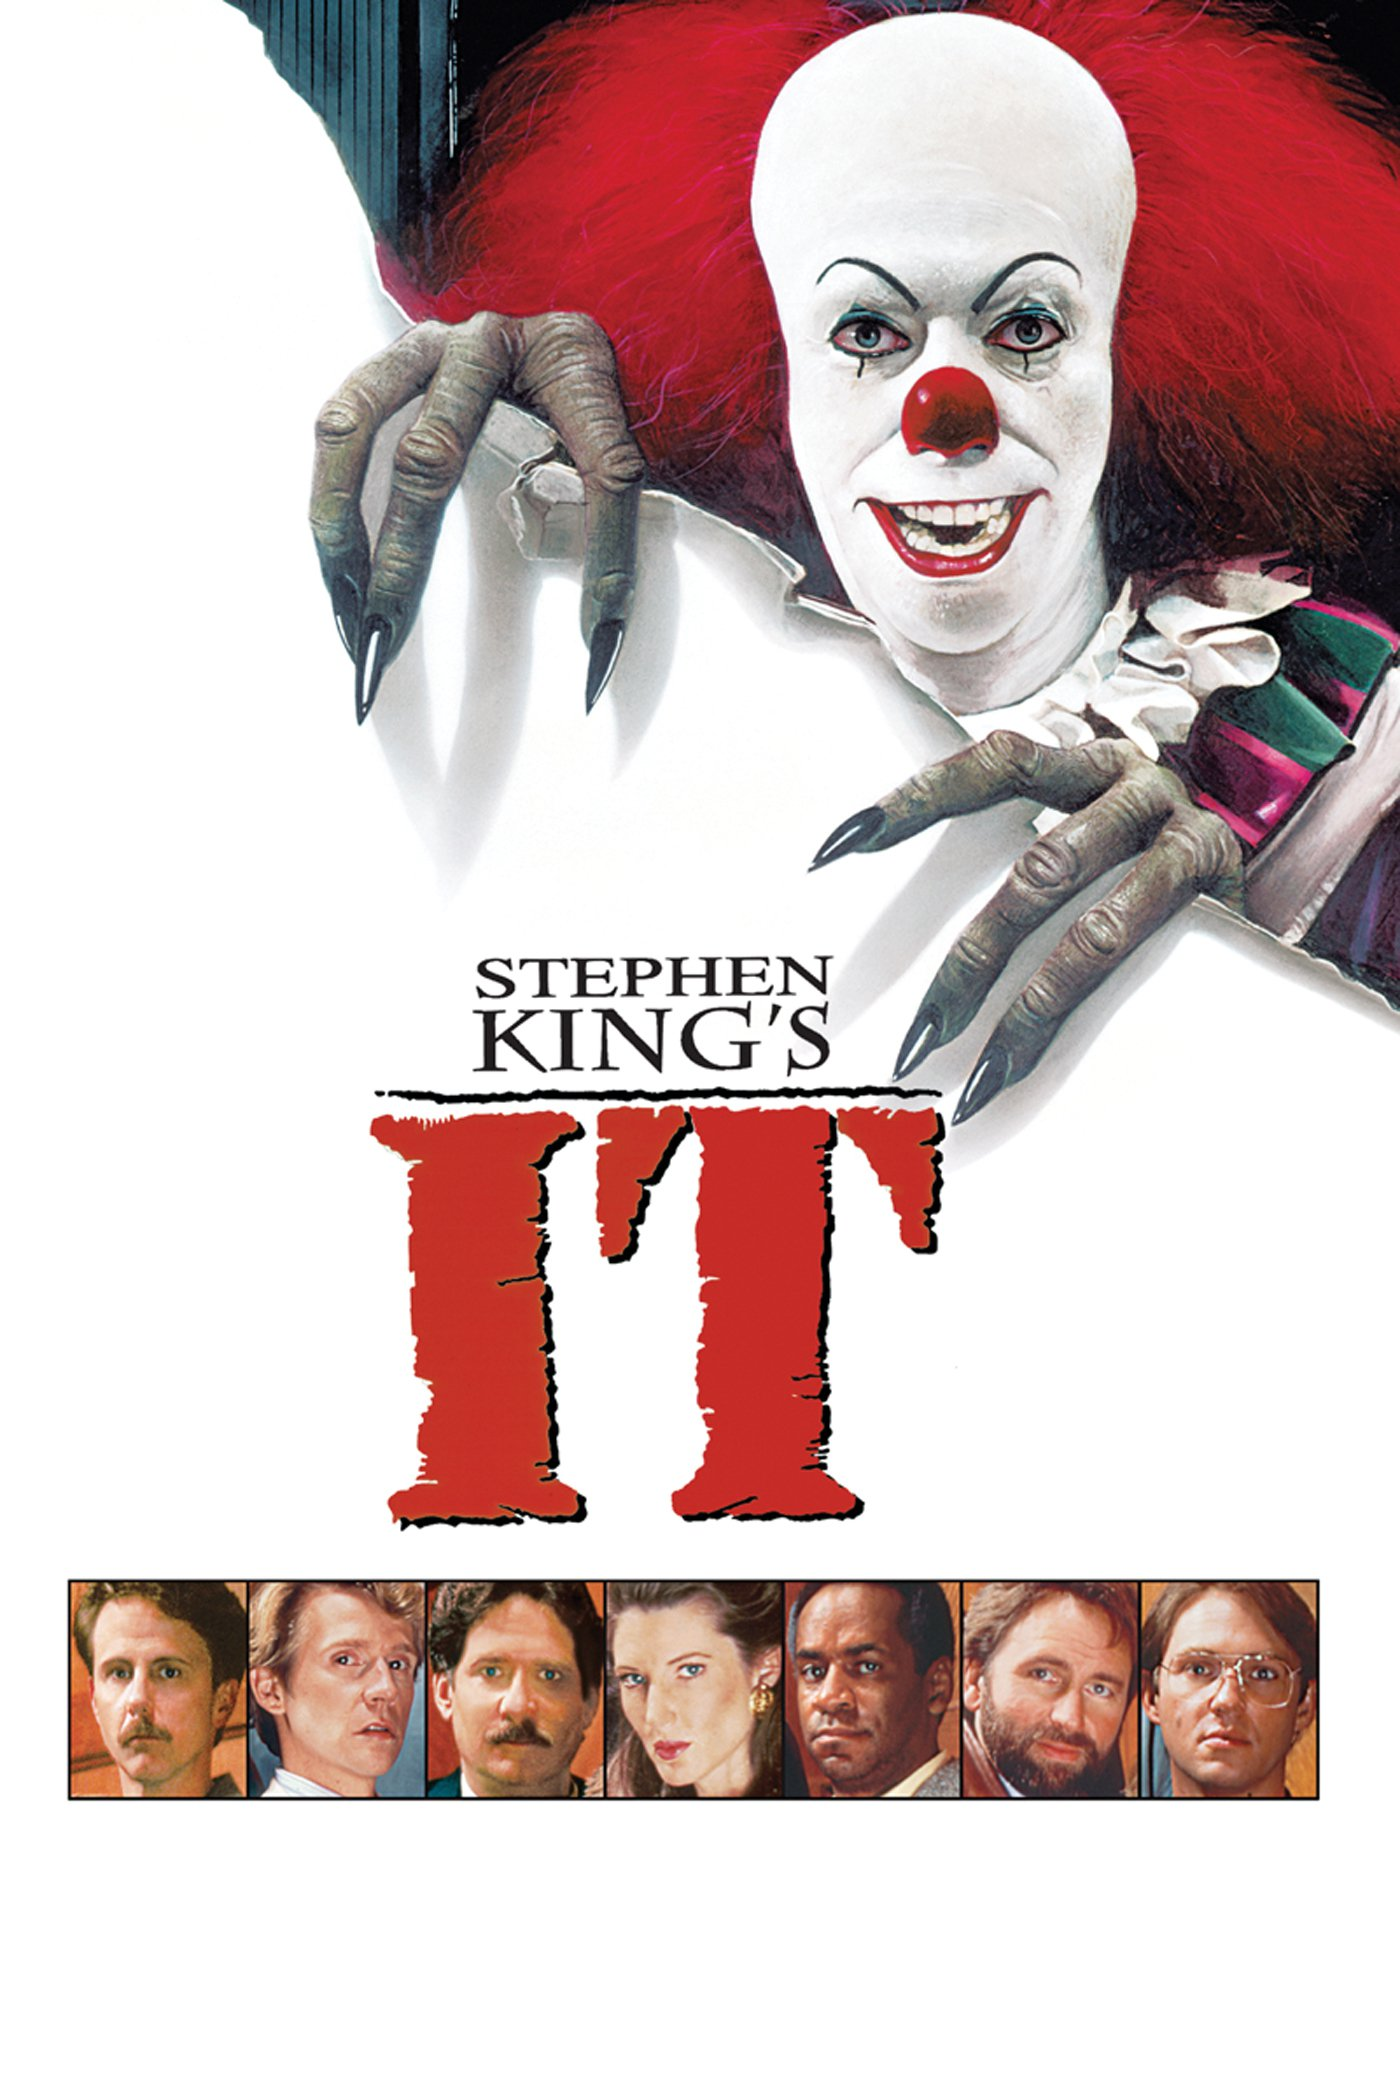 b2683-stephen-king-it-1990-poster